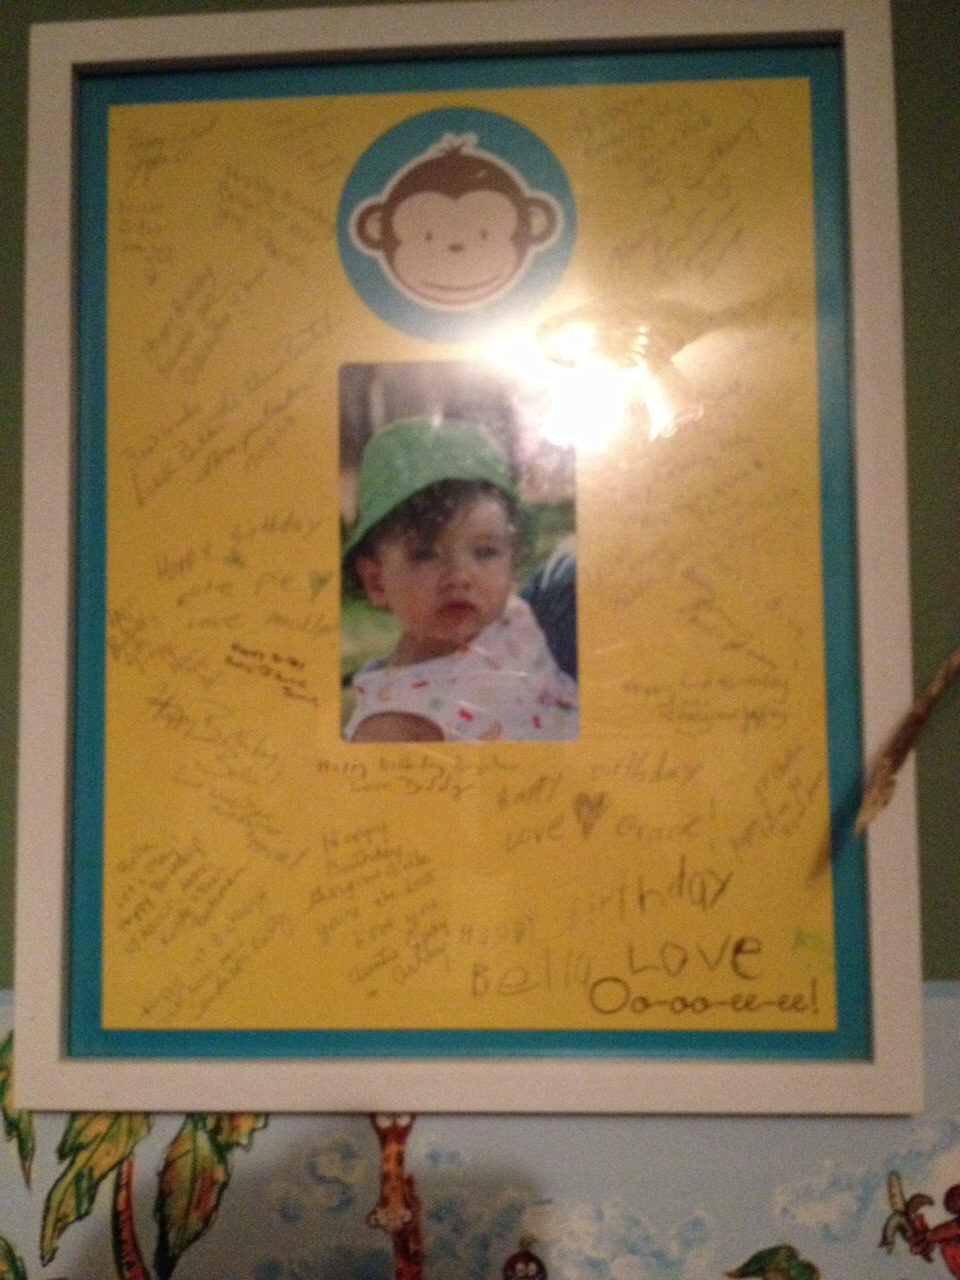 Not the greatest pic looks better in person take a piece of decorative paper draw an outline where pic will go and have everyone who comes to their party sign around photo after the party pick your fav pic from party place in center and frame. Your child will always know who was at their first bday